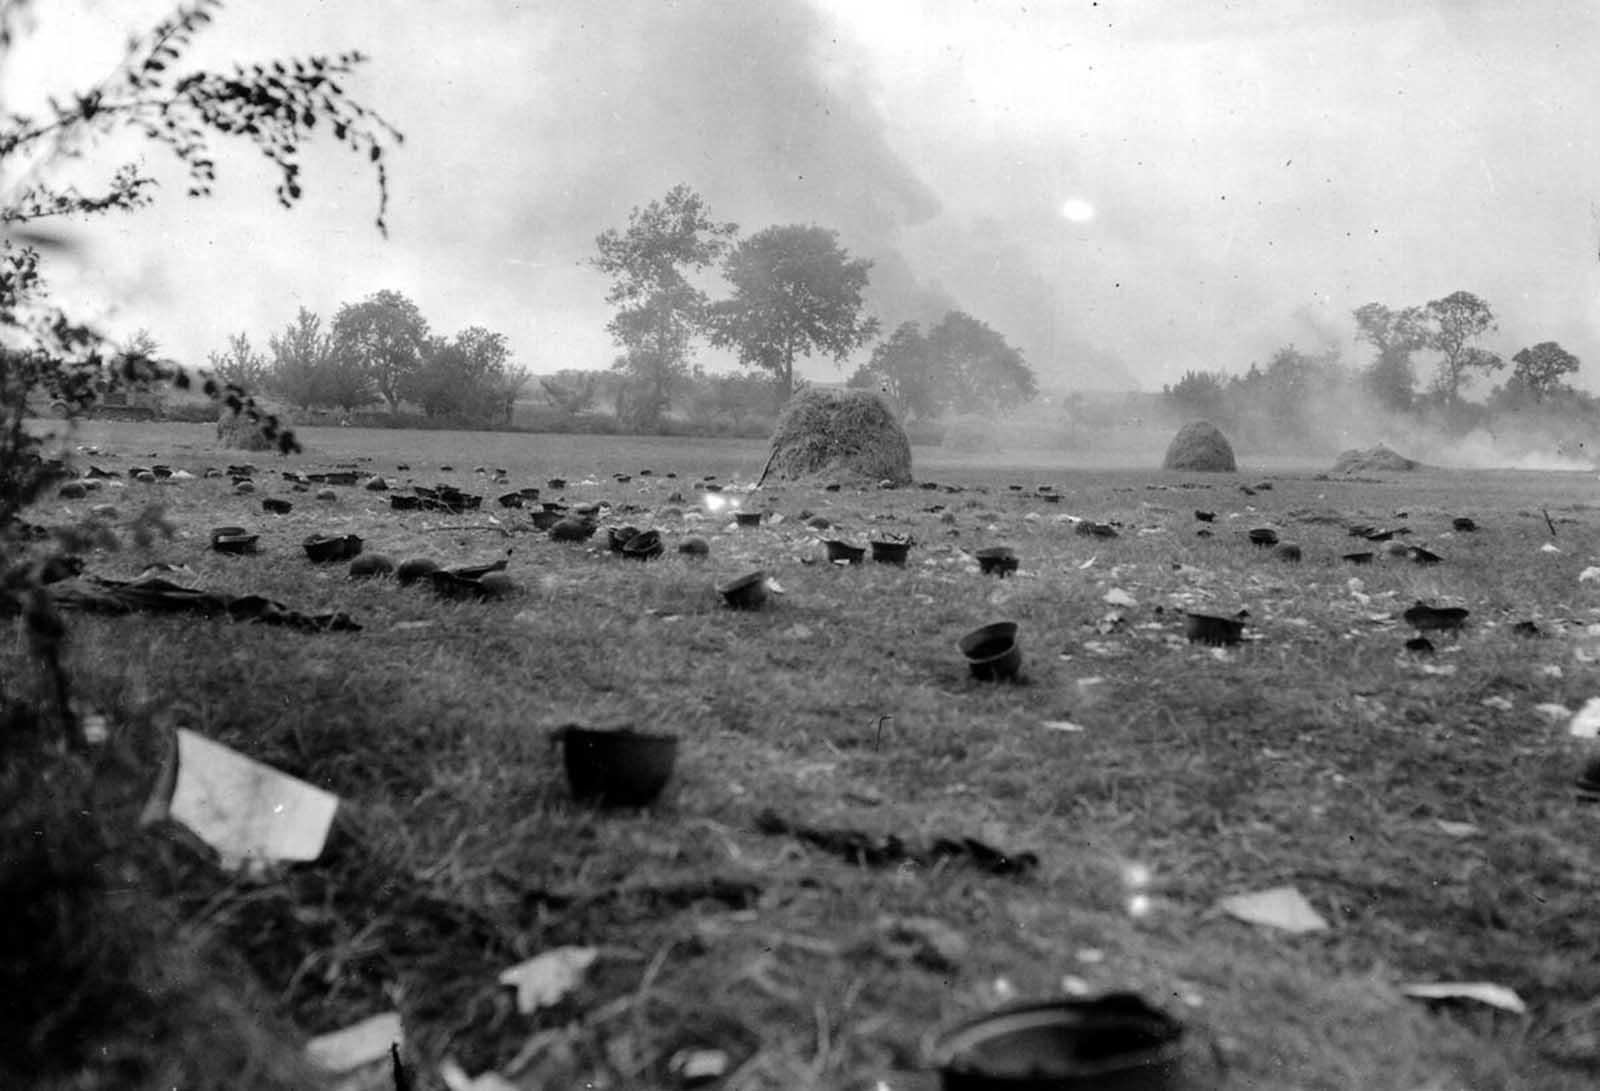 Helmets discarded by German prisoners, who were taken to a prison camp, in a field in Normandy, France in 1944.